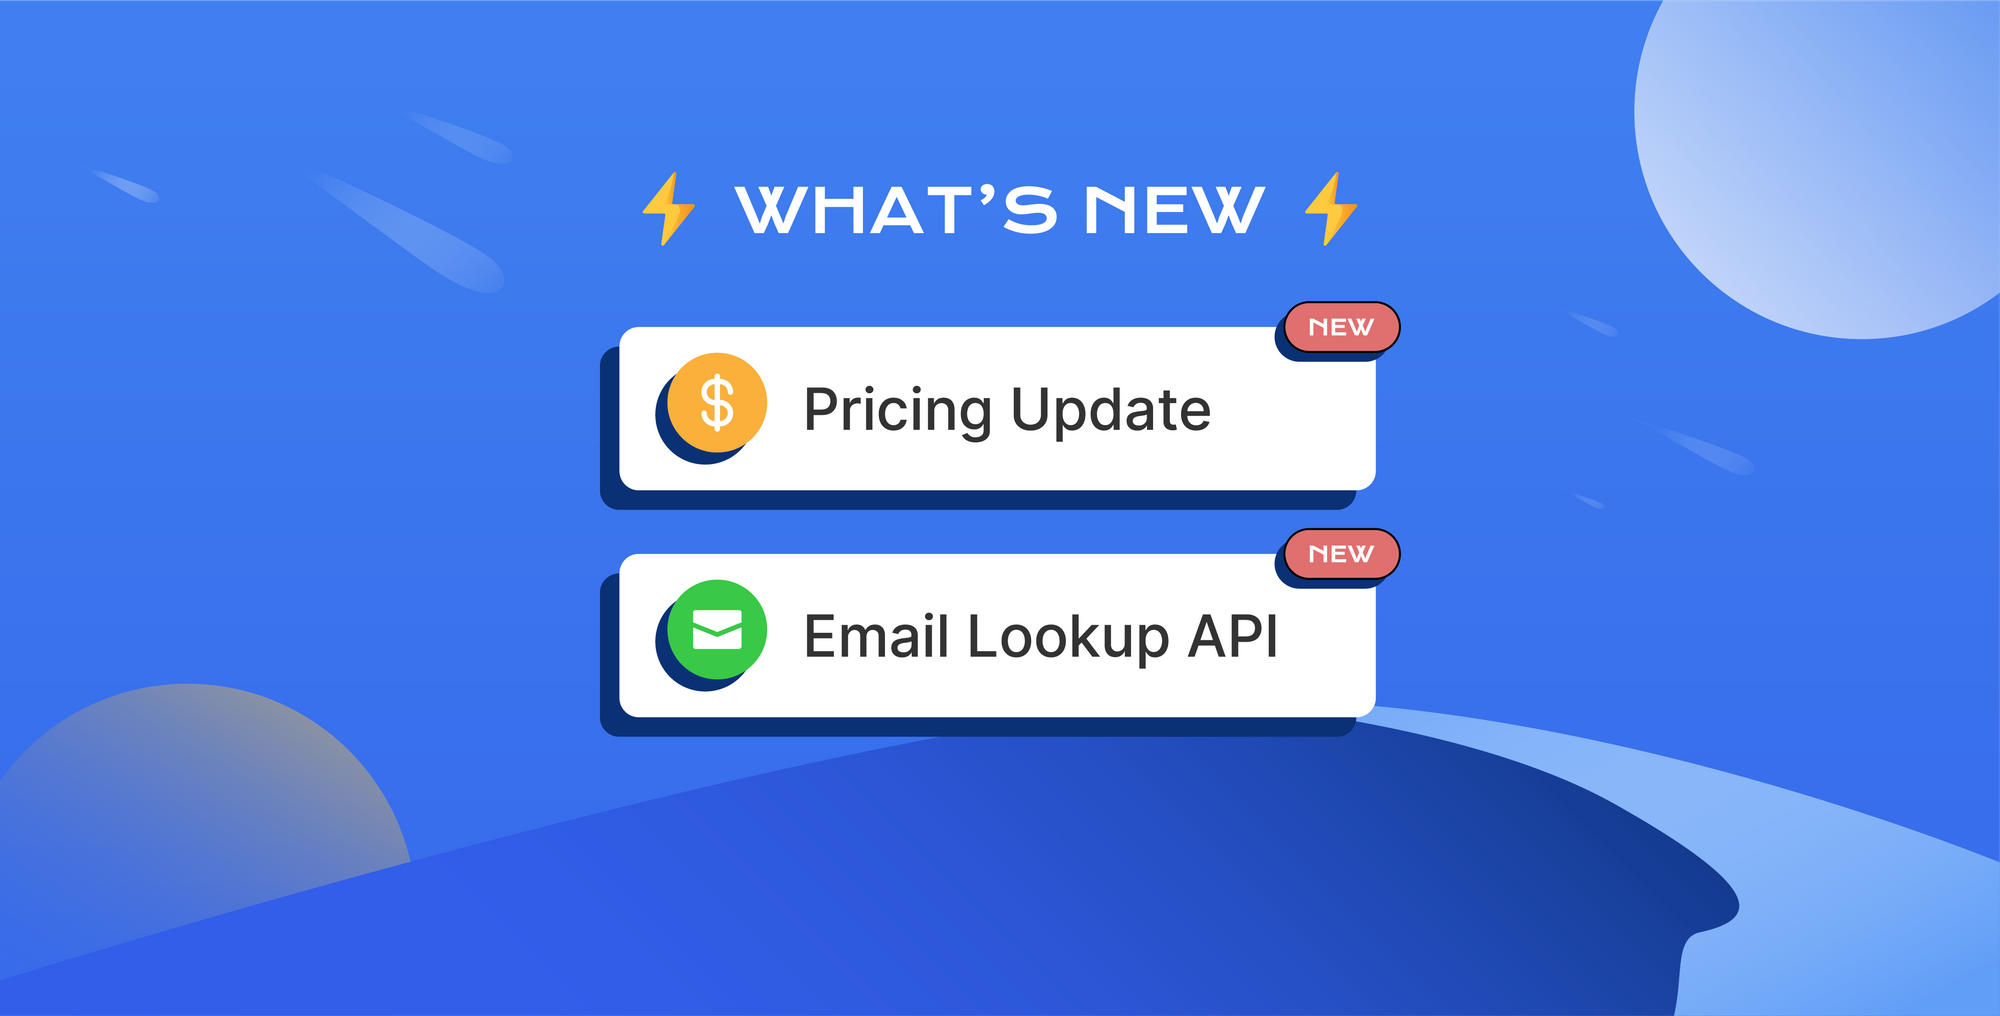 We updated our pricing and made Email Lookup API generally available